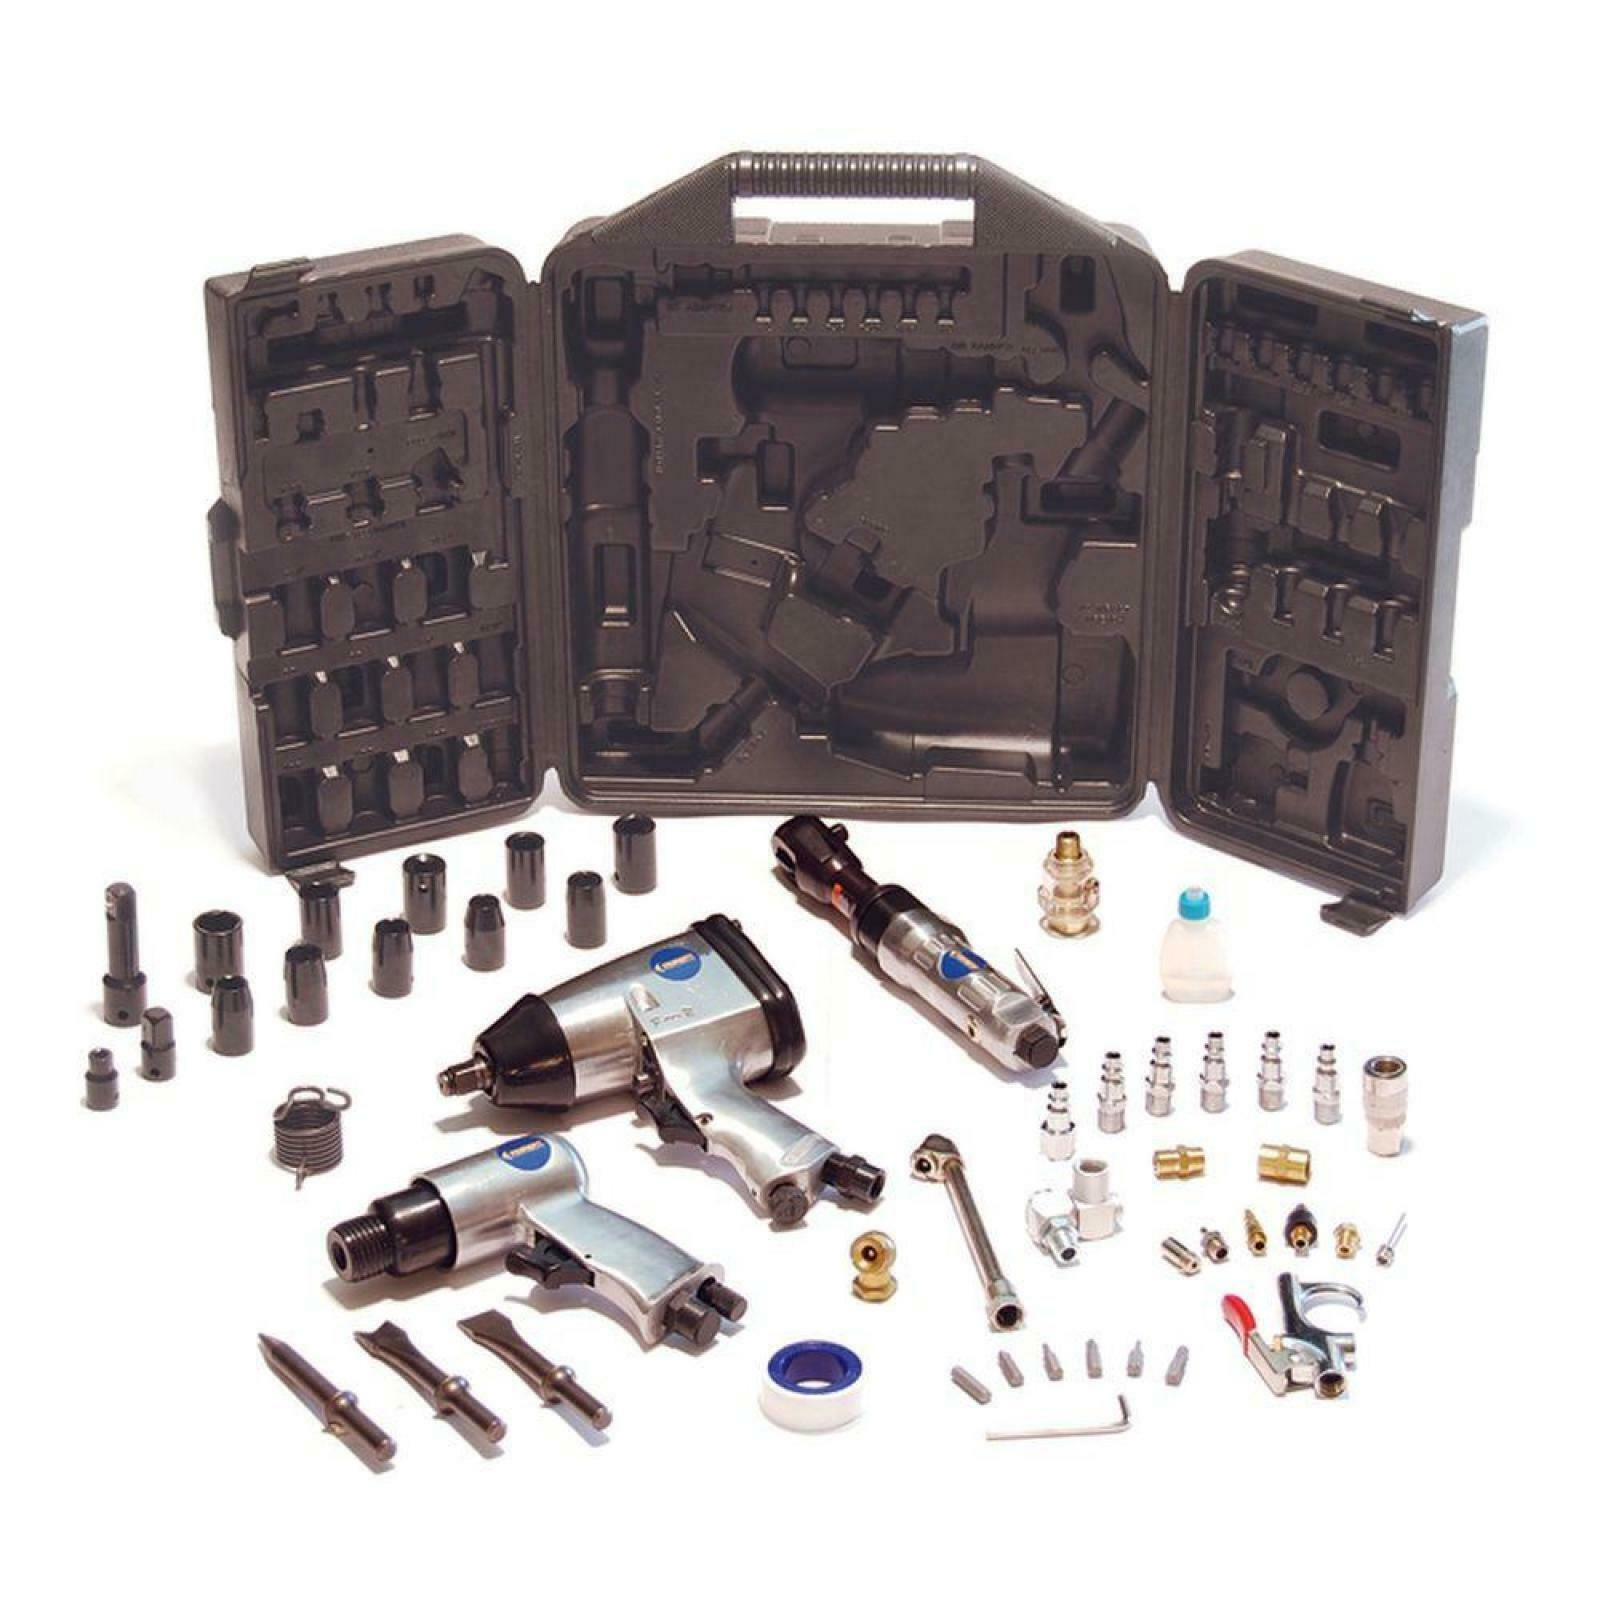 Air Compressor Tool Accessory Kit Primefit w  Storage Case 50 Piece Garage Shop